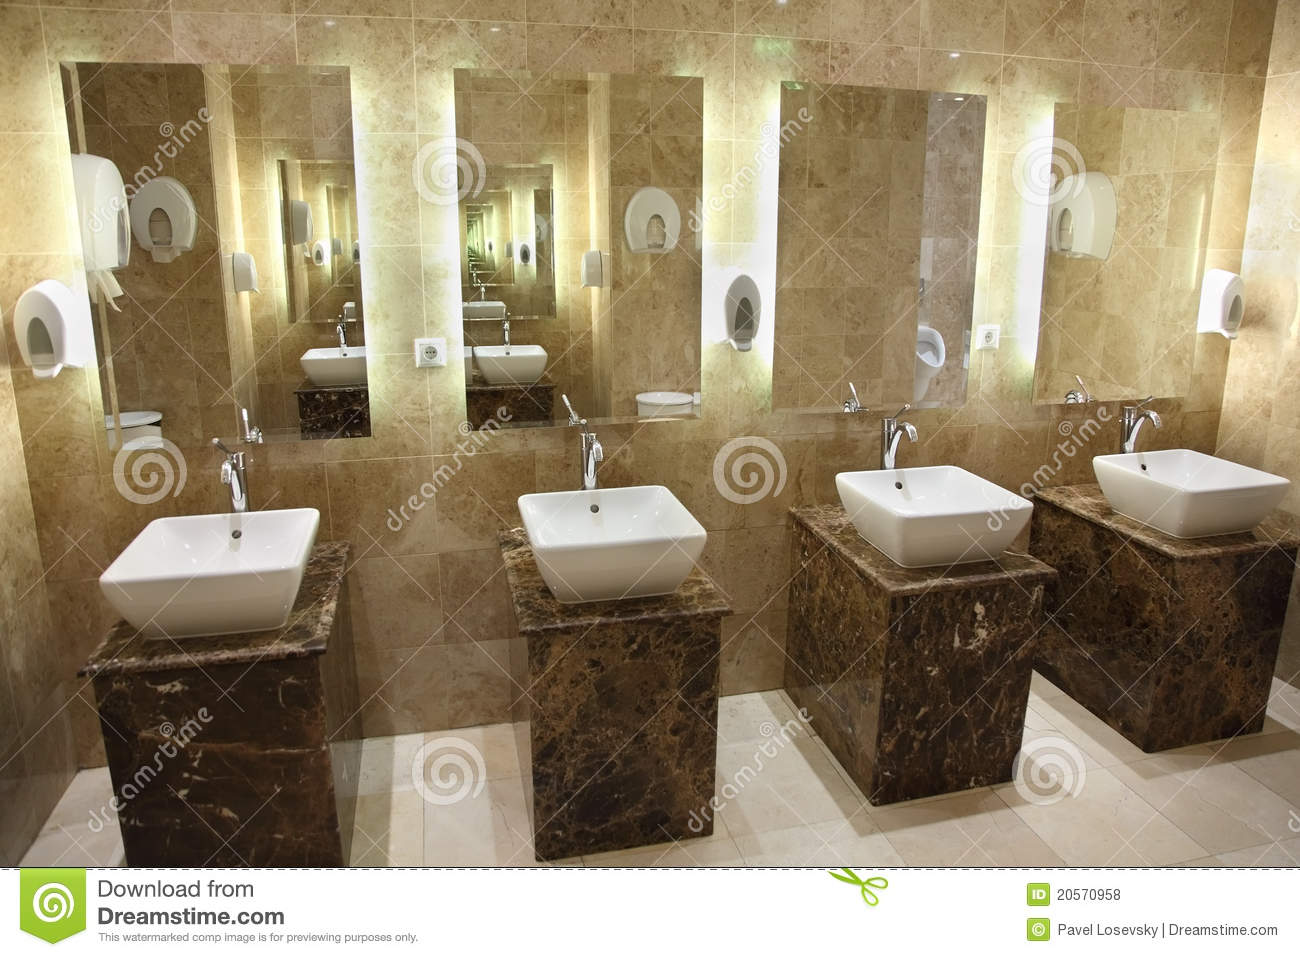 Sinks and mirrors in public restrooms stock photo image - Espejos para lavabos ...